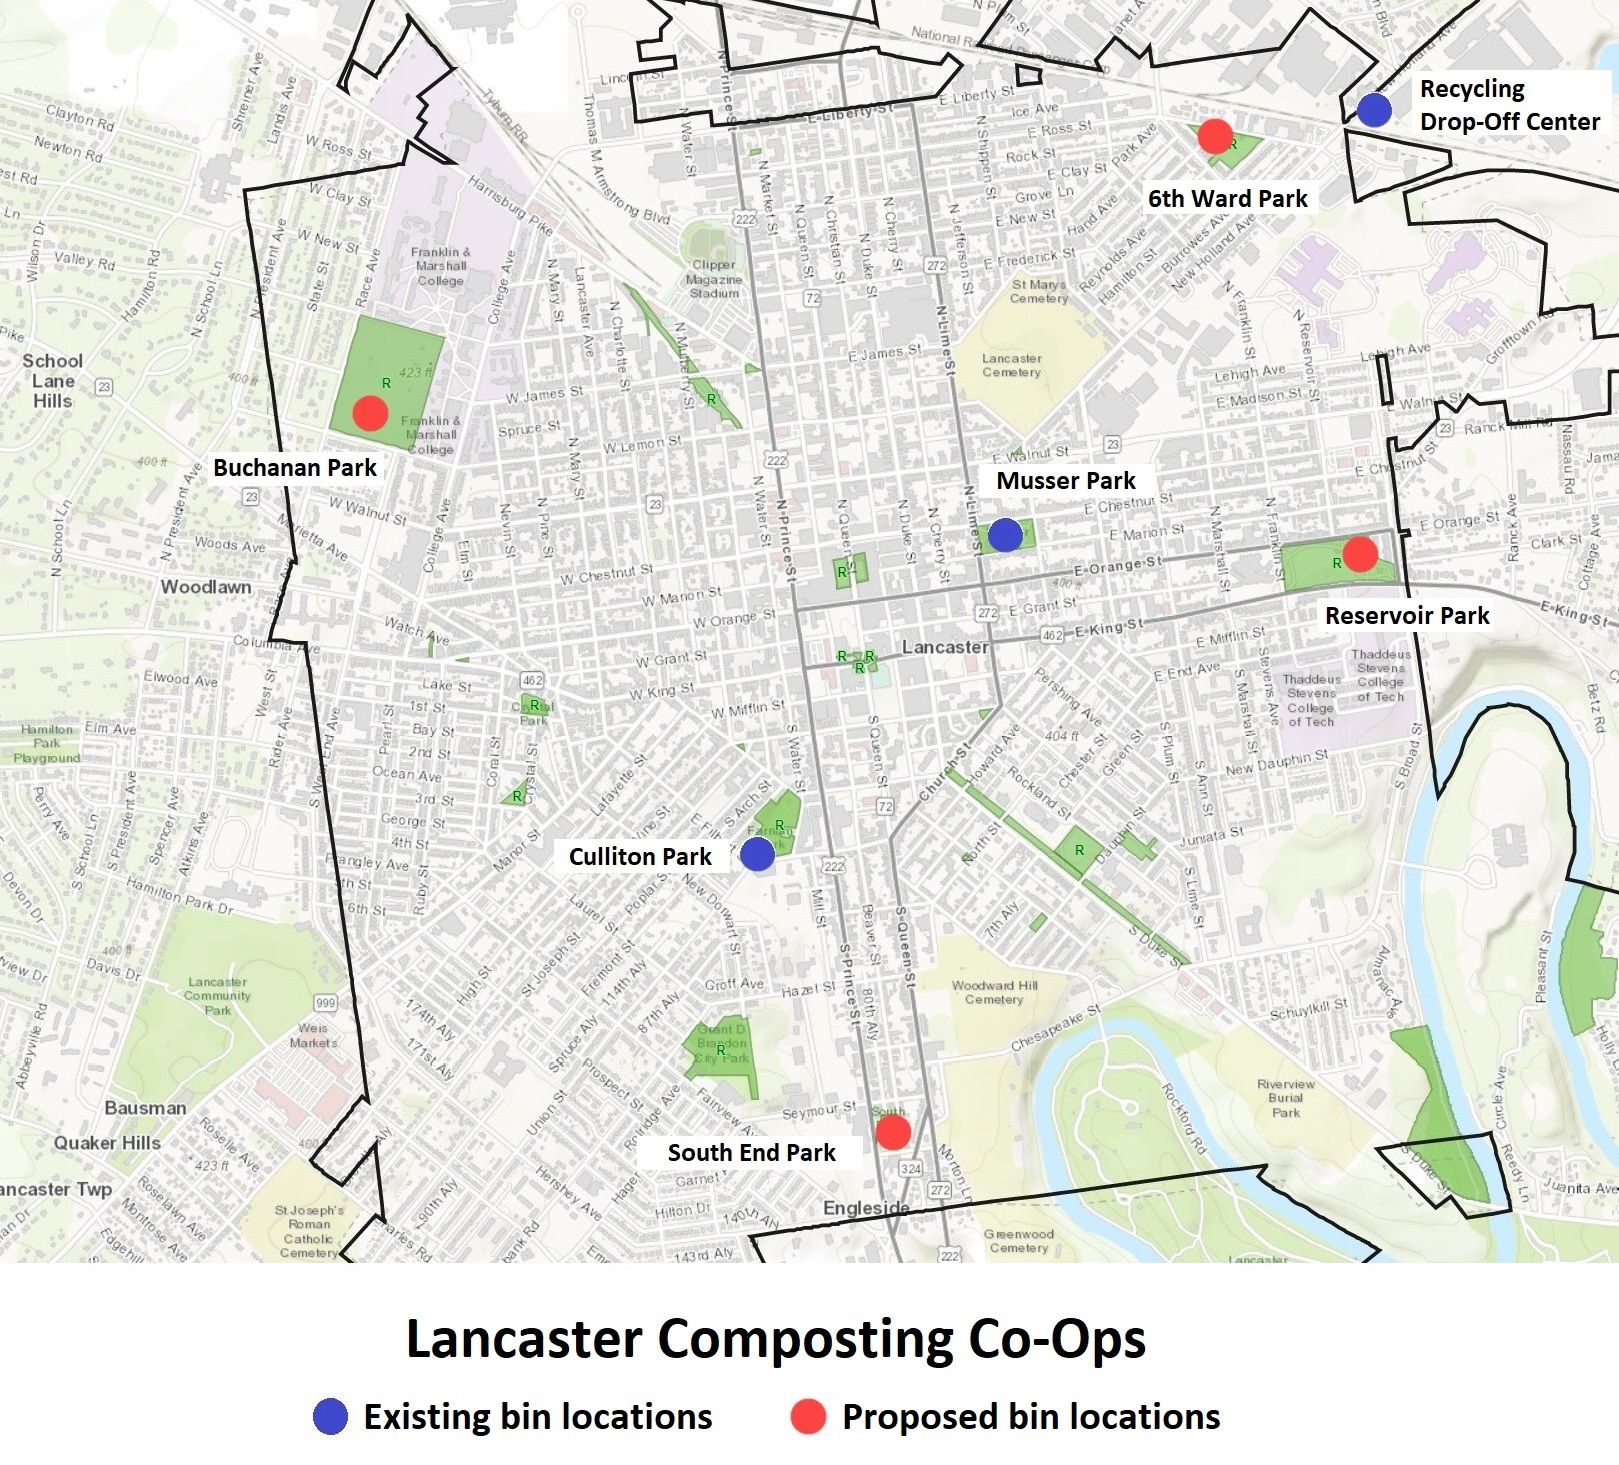 Click to enlarge. (Source: Lancaster Composting Co-Ops | City of Lancaster)